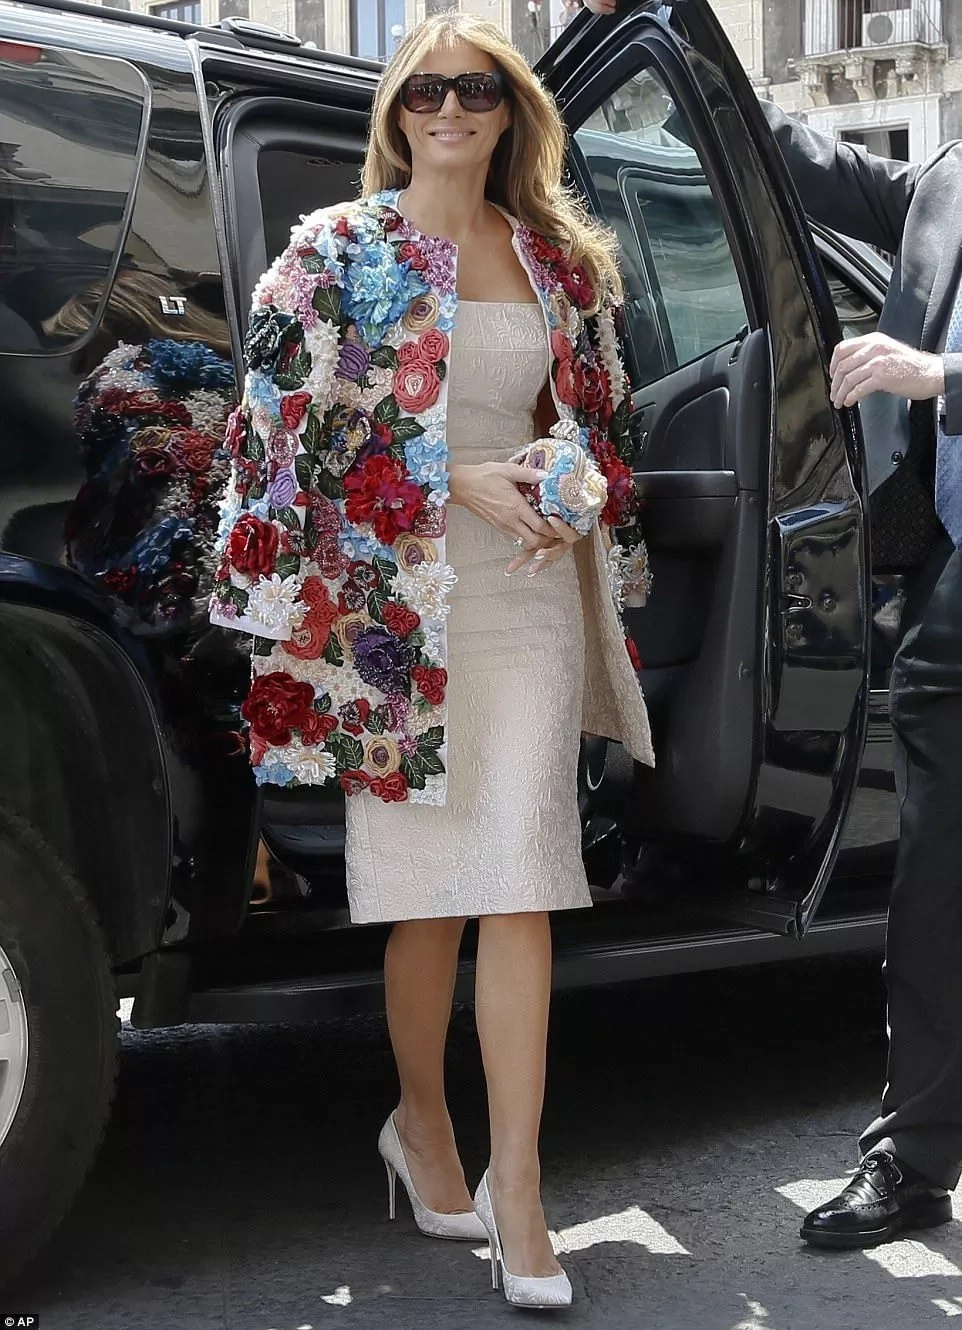 Melania Trump steps out in Ksh5.1 MILLION floral jacket